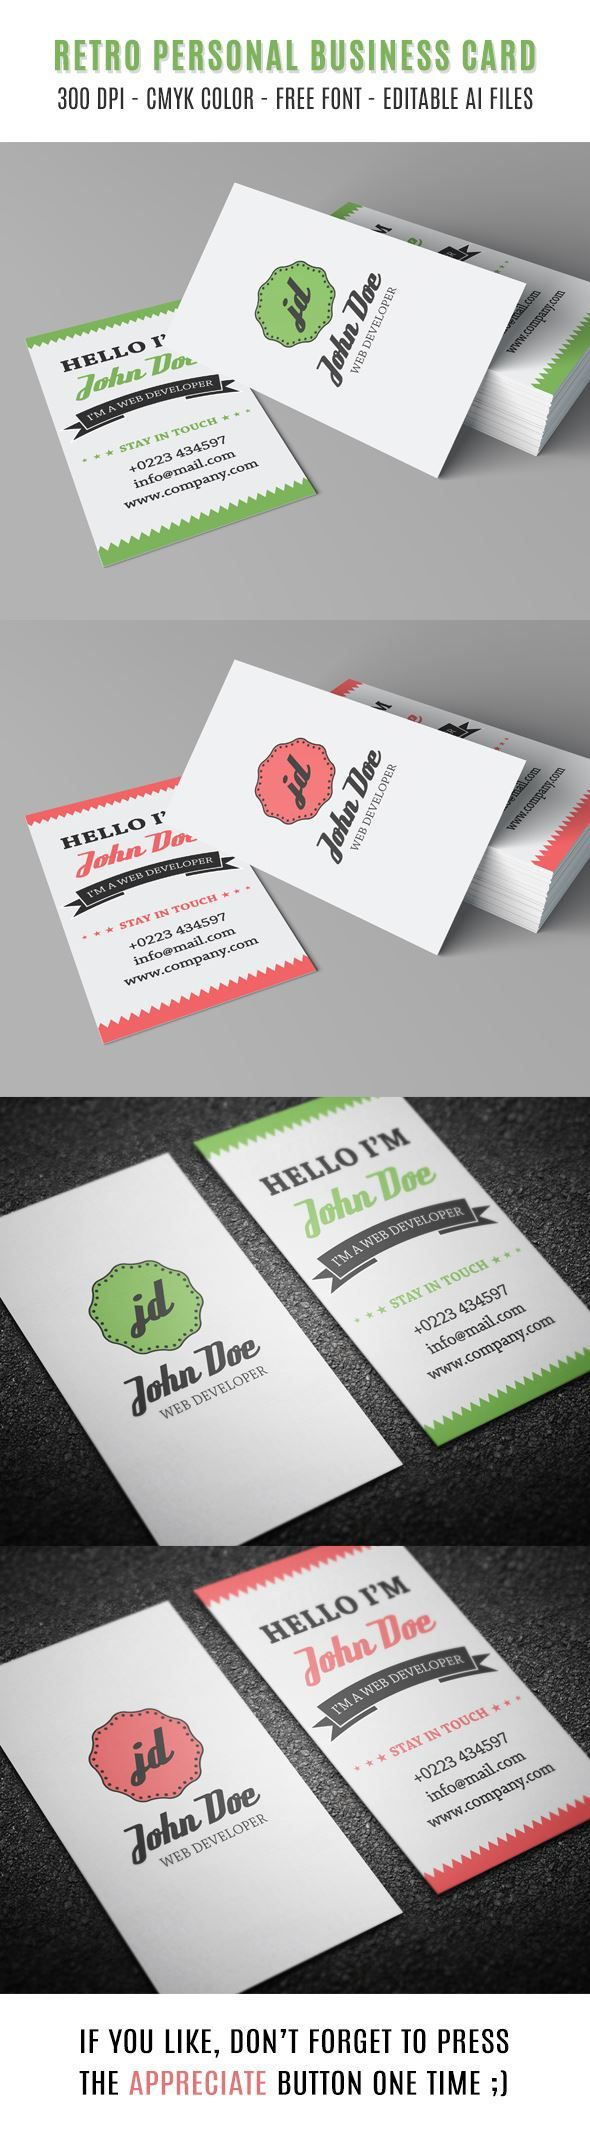 Retro Personal Business Card :: [20 Free Printable Templates for Business Cards]